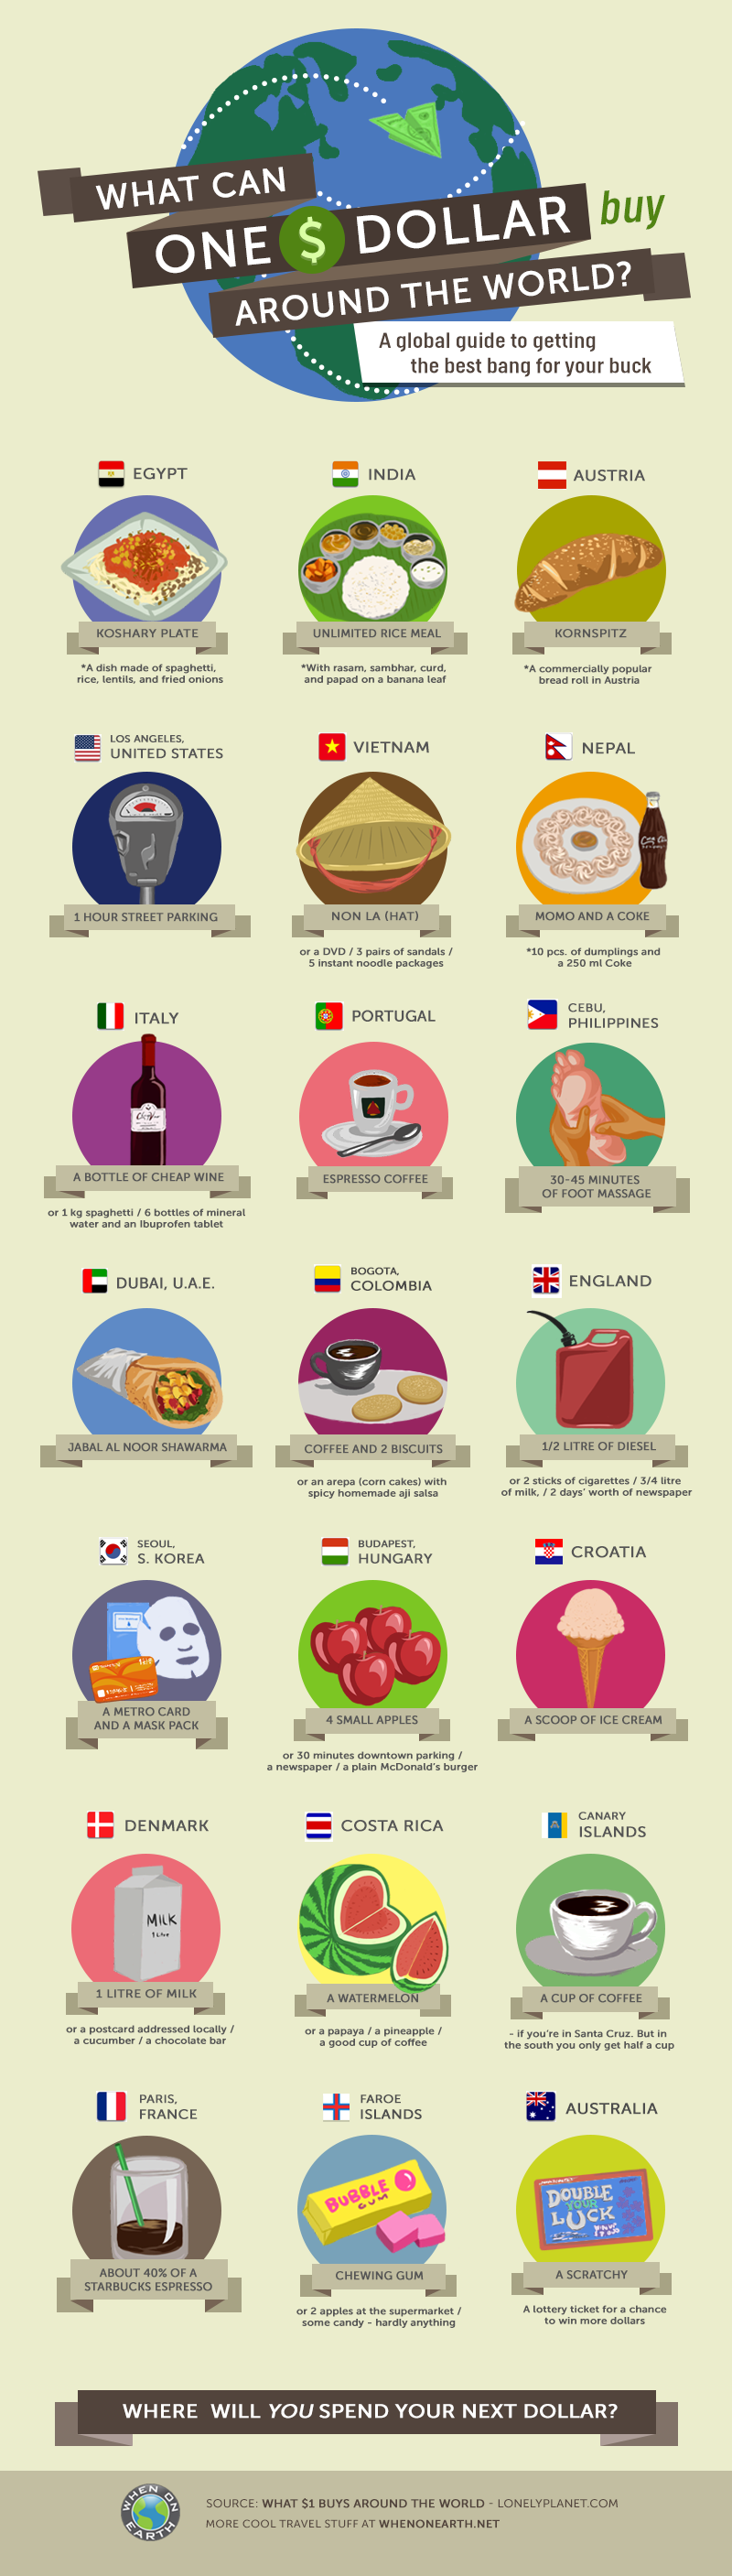 Infographic: What Can One Dollar Buy Around the World? #infographic